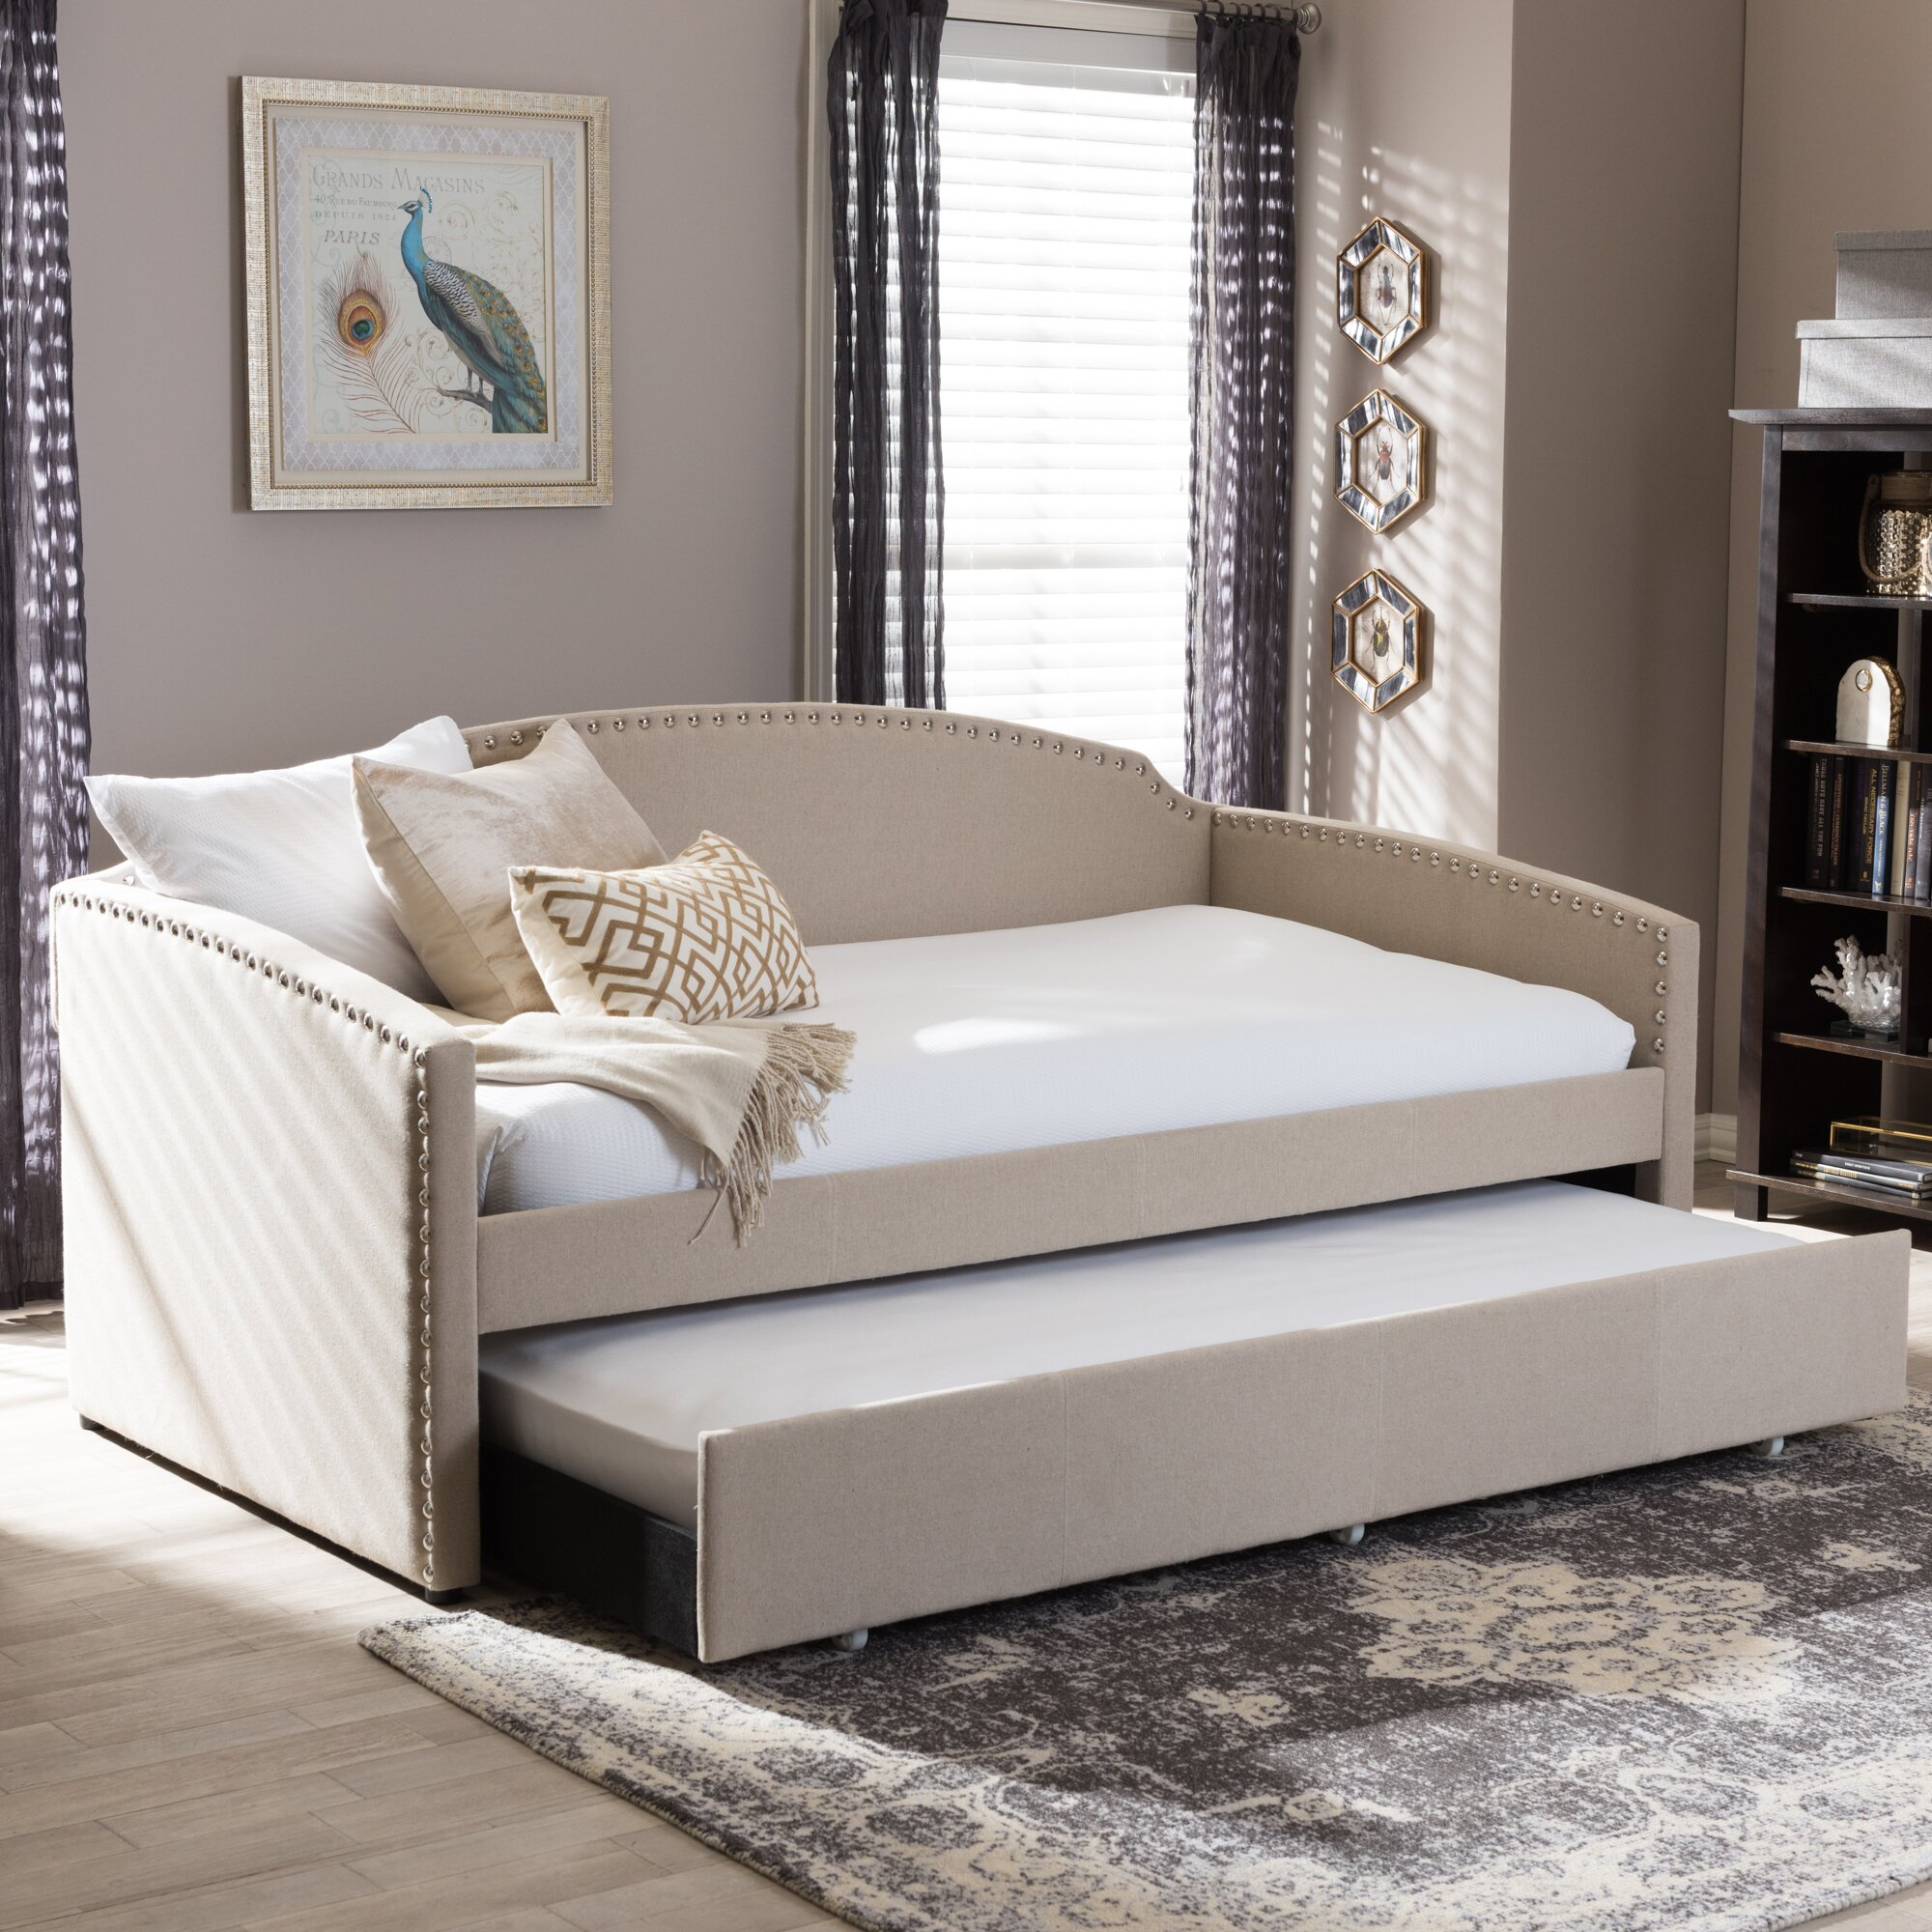 Wholesale Interiors Baxton Studio Daybed With Trundle